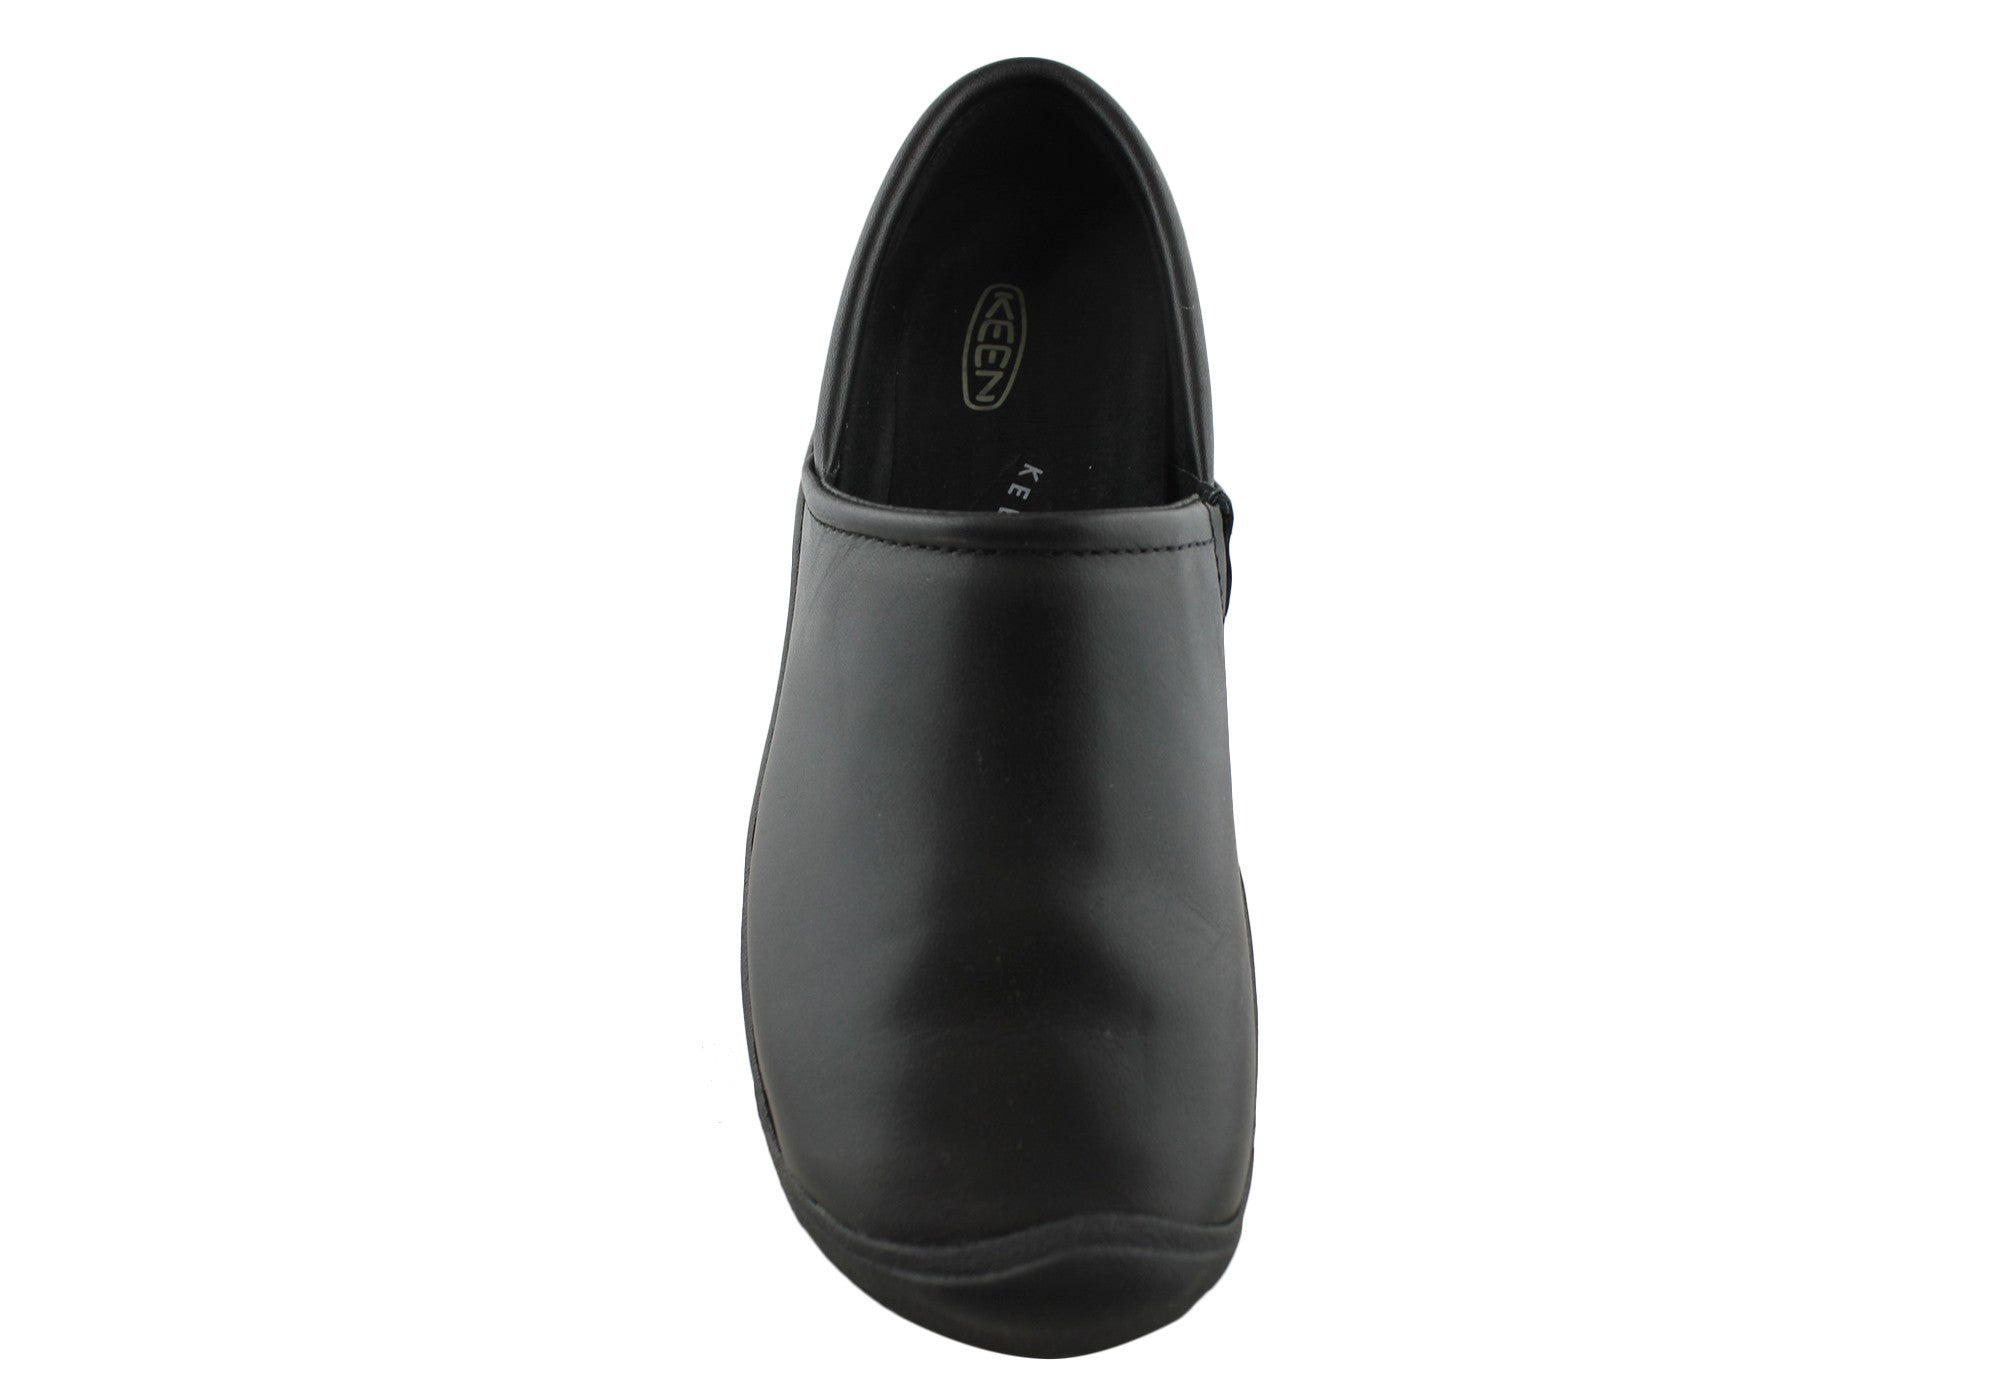 Keen Ptc Slip On II Leather Womens Casual/Work